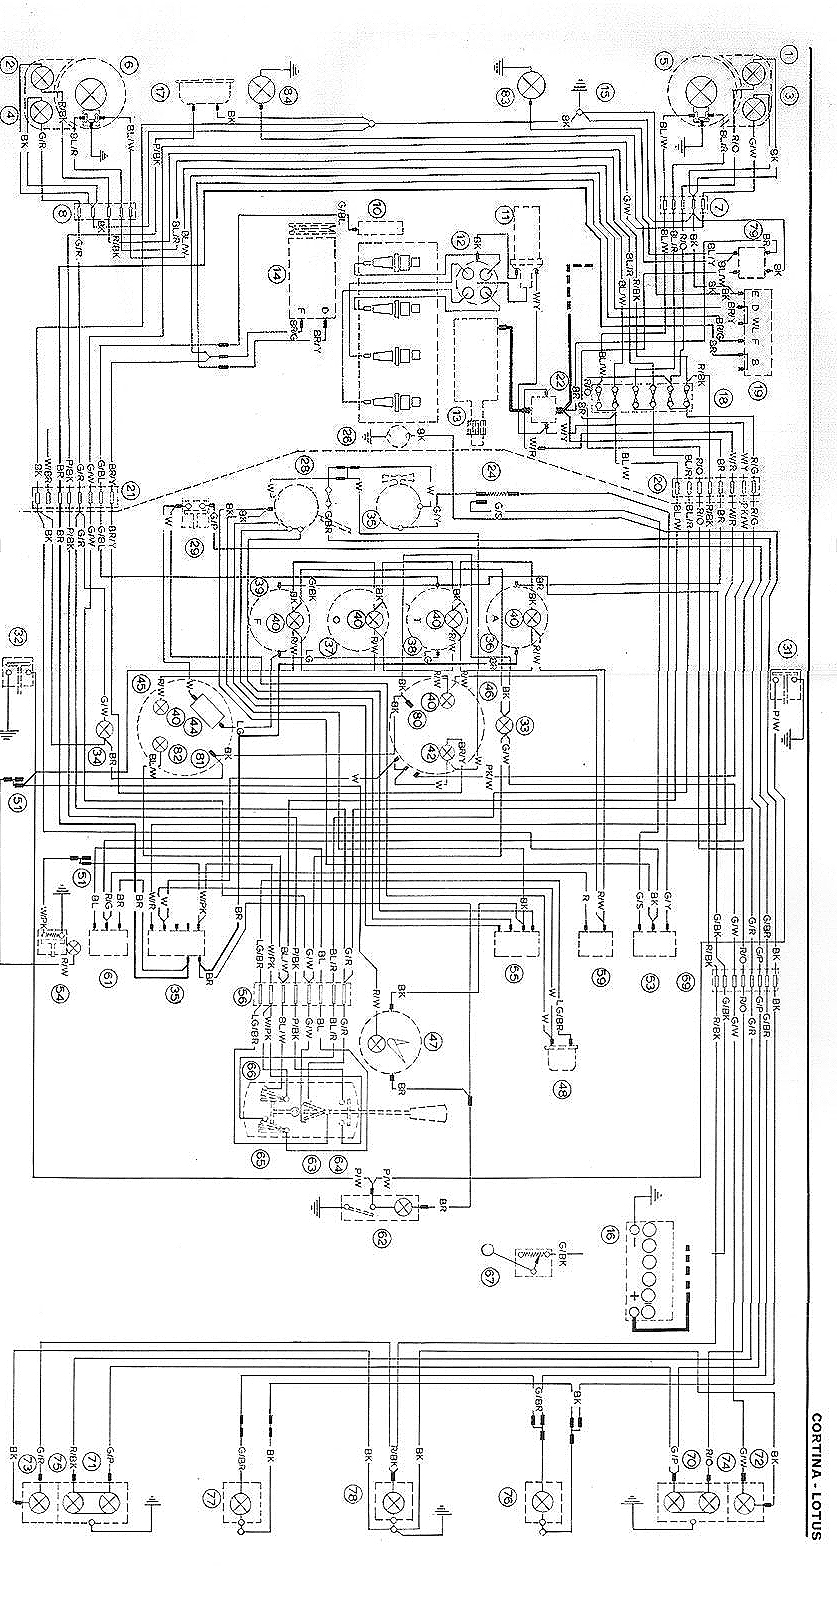 hight resolution of ford escort mk2 wiring diagram download free ford galaxy wiring diagram download efcaviation